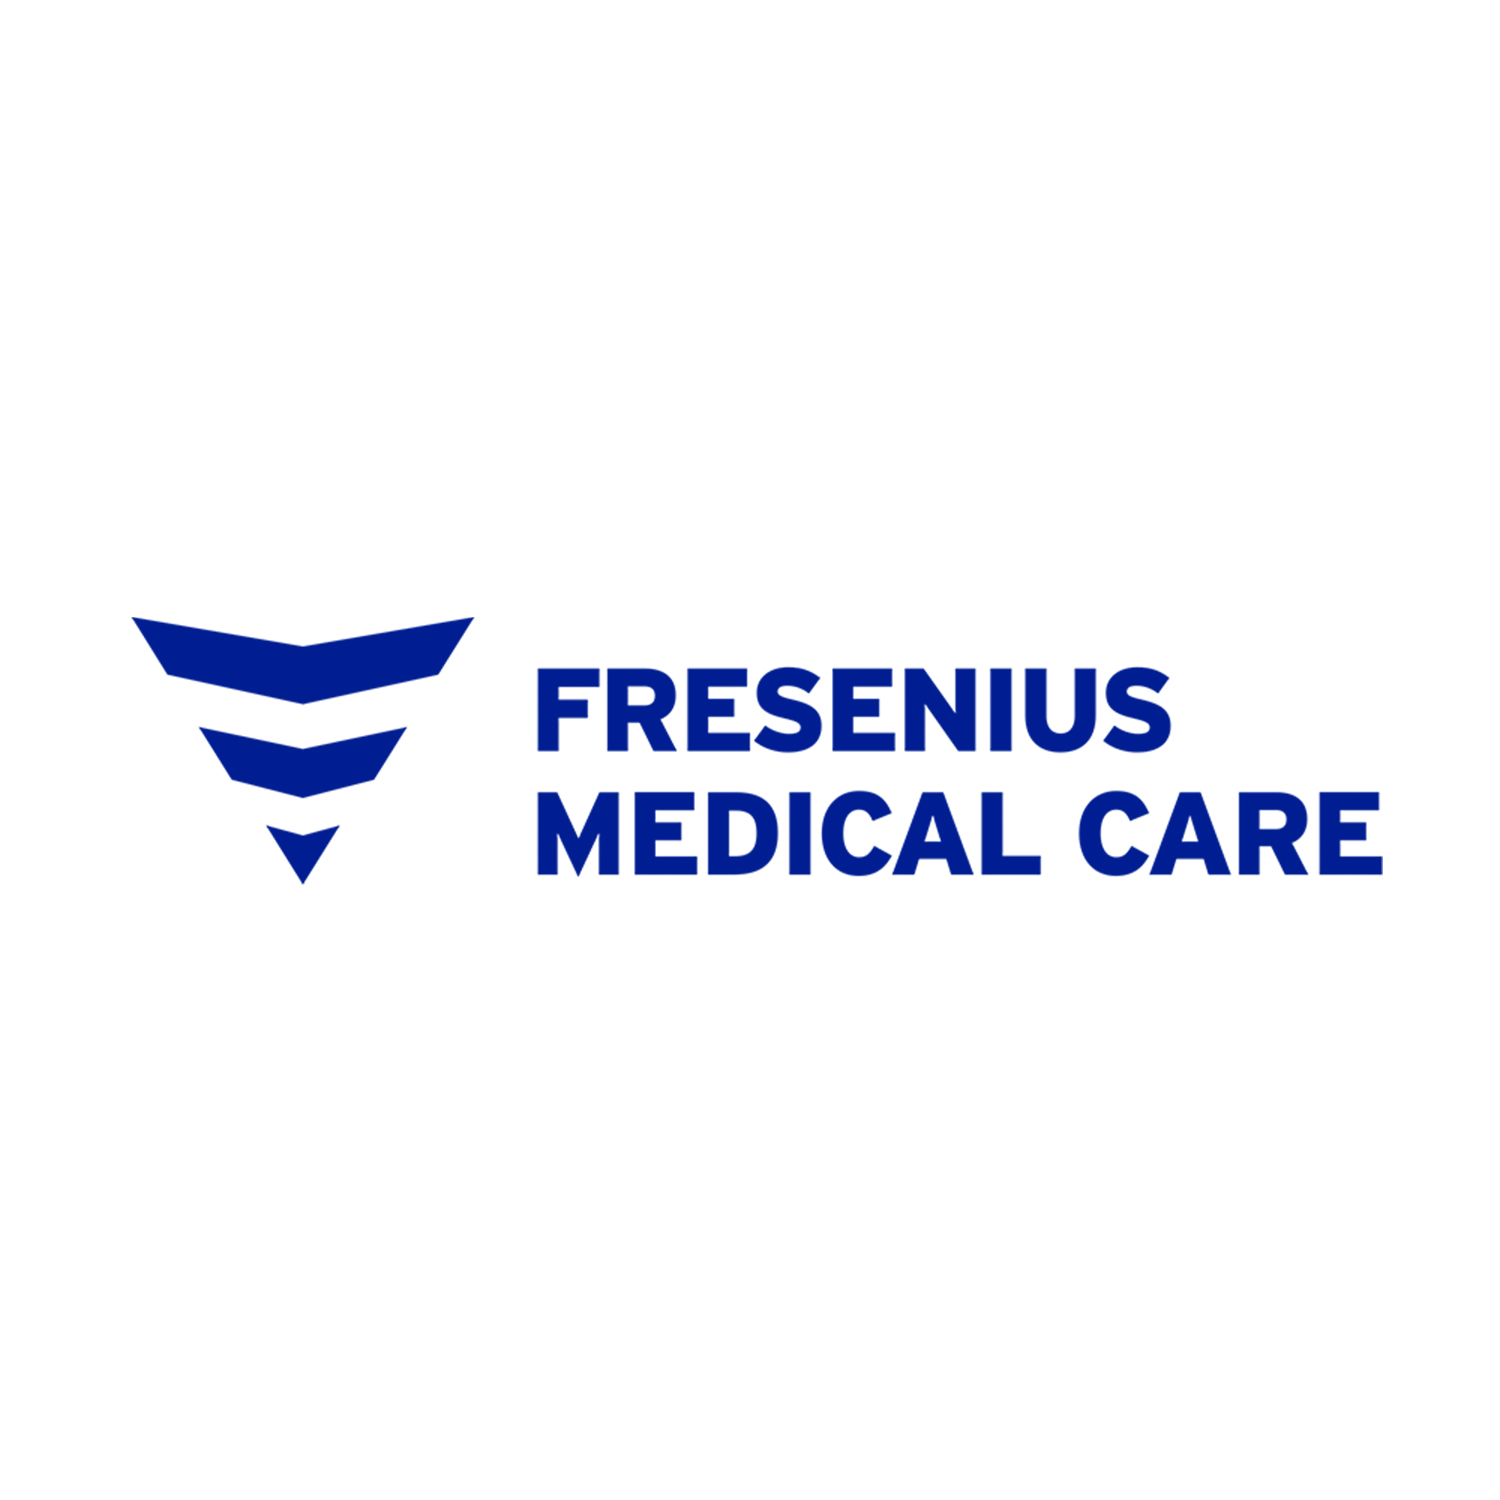 Fresenius Medical Care